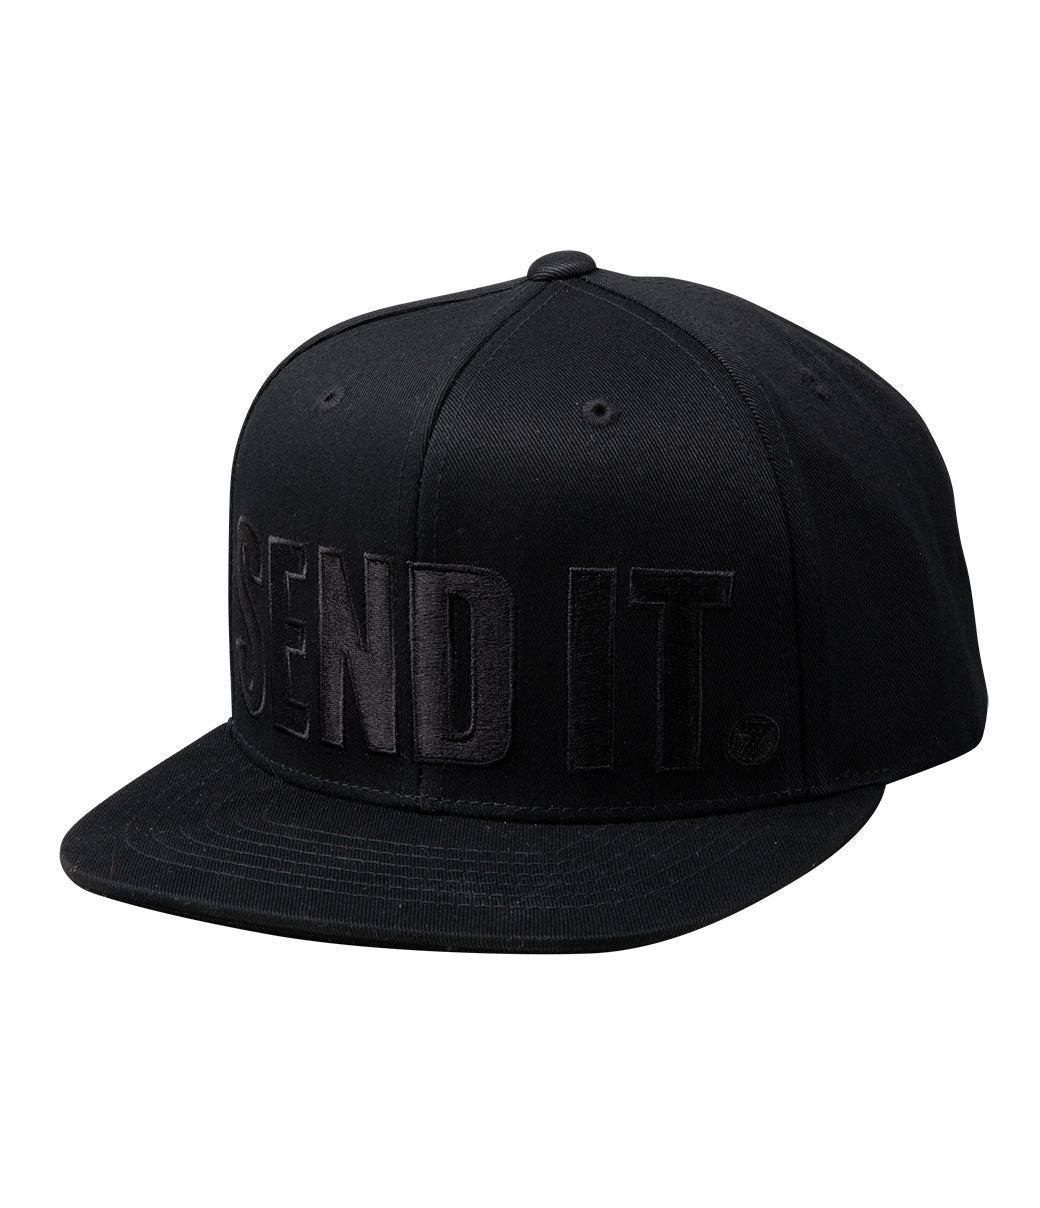 Send It Hat - Black/Black